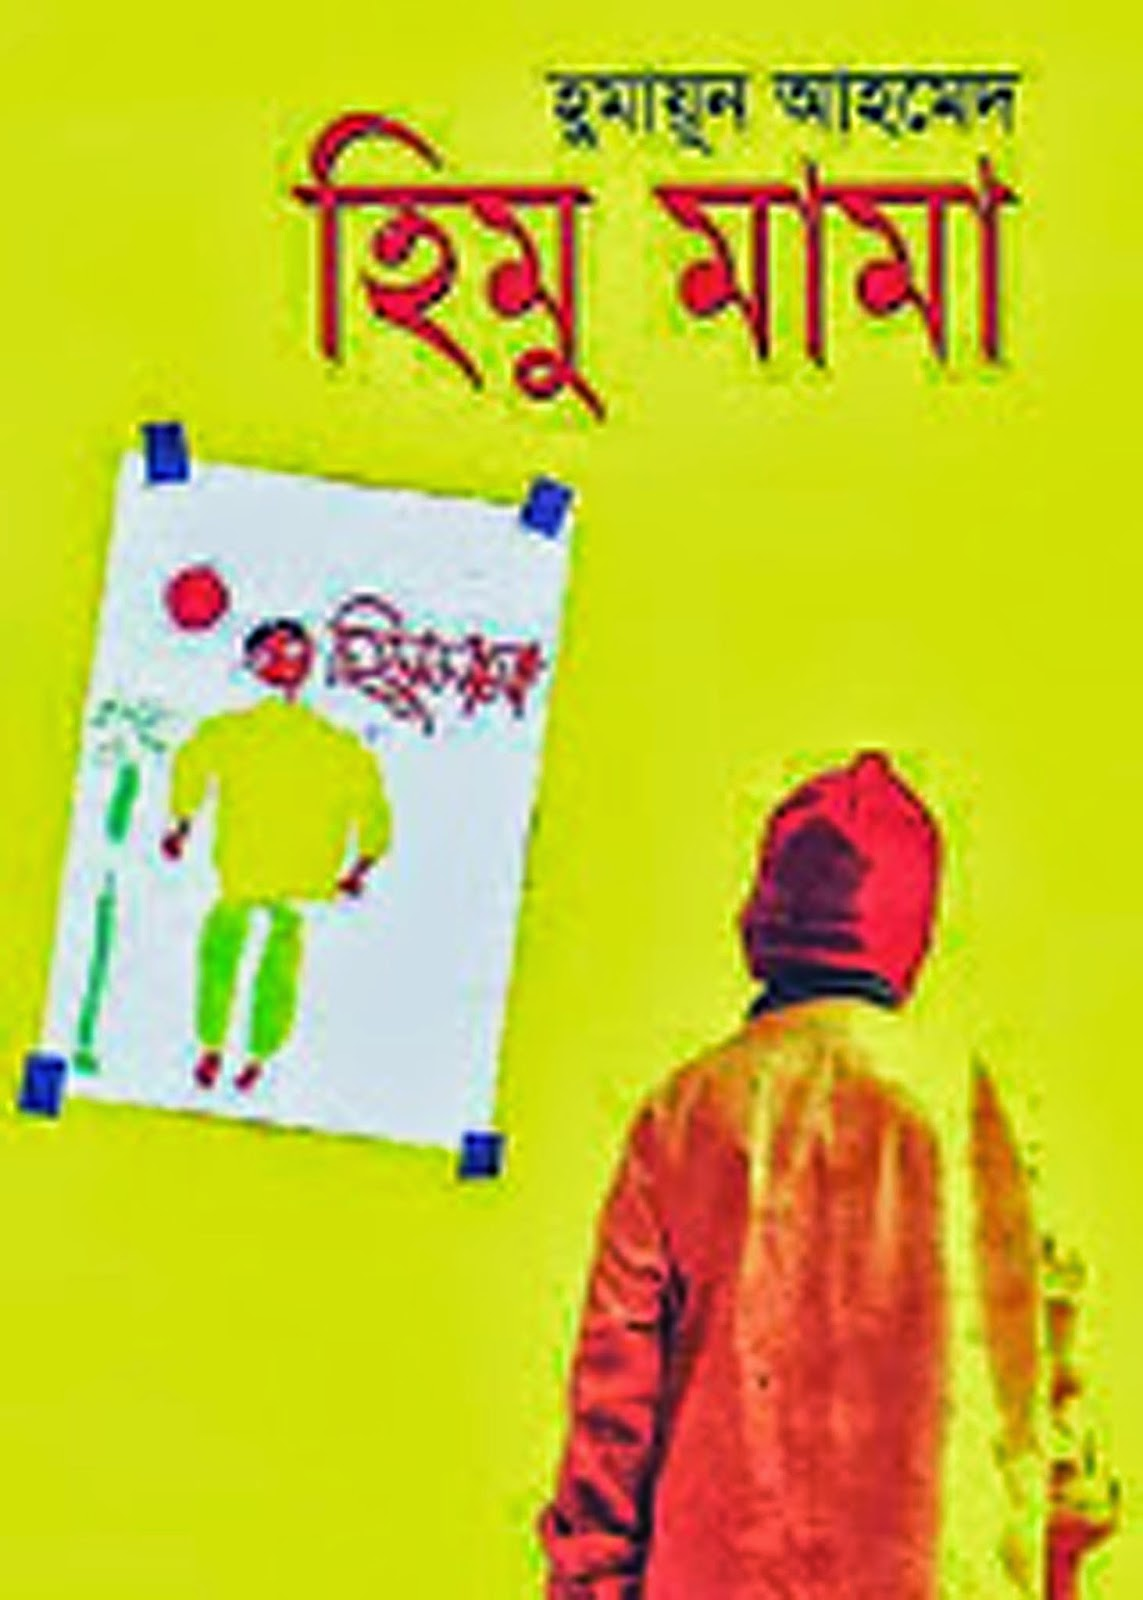 Download himu by humayun ahmed ebook free software chasetube.